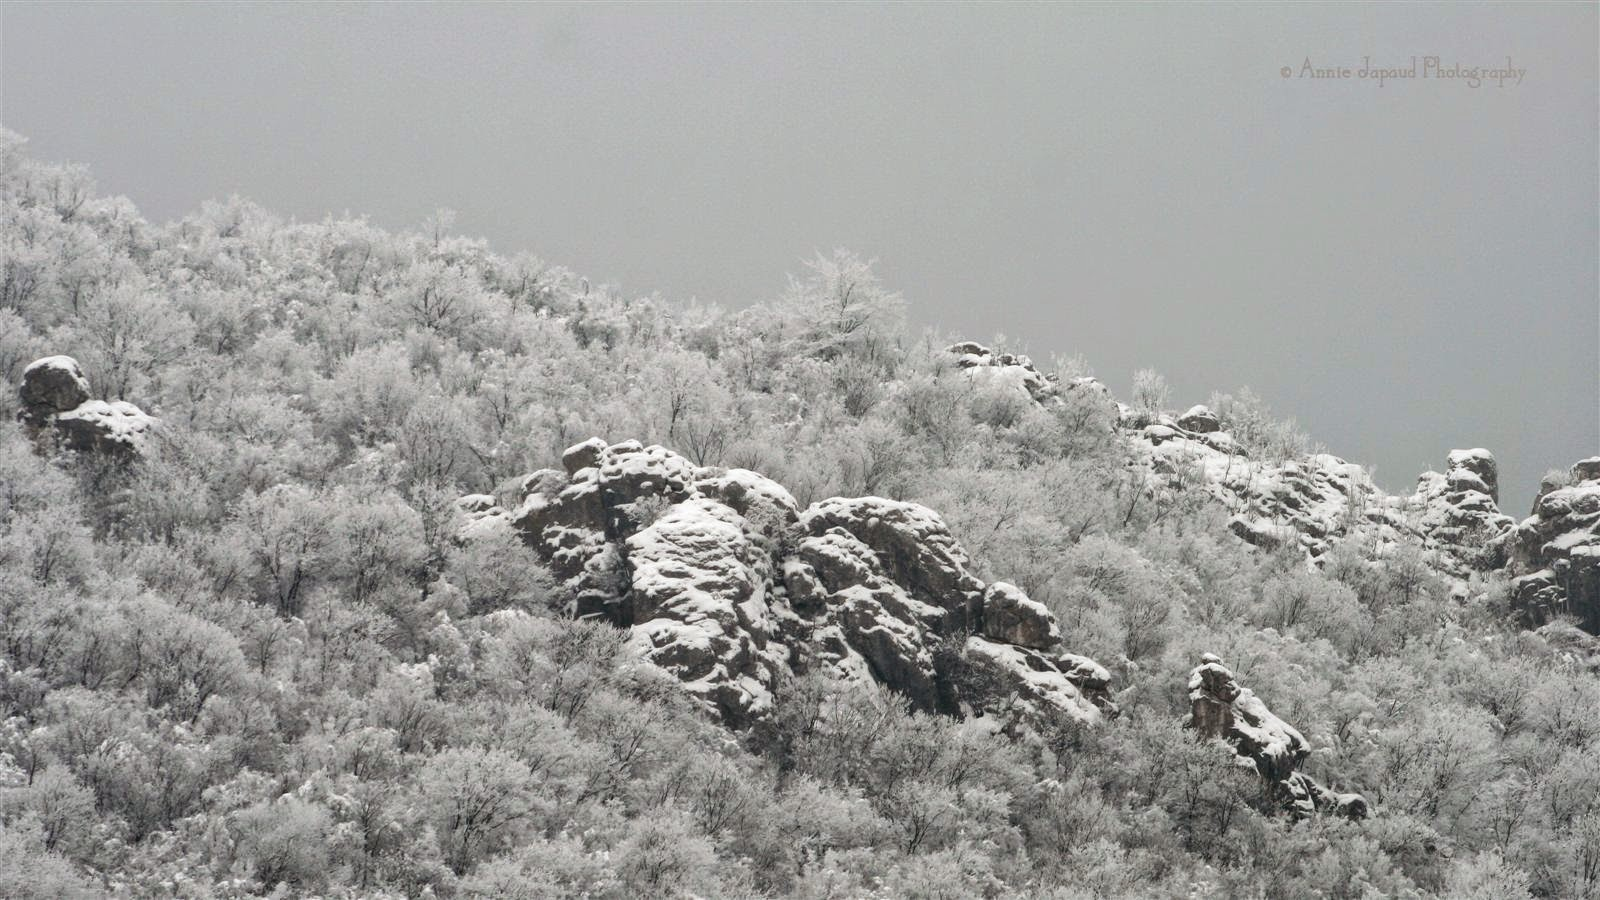 mountains in snow, Vratsa, Bulgaria